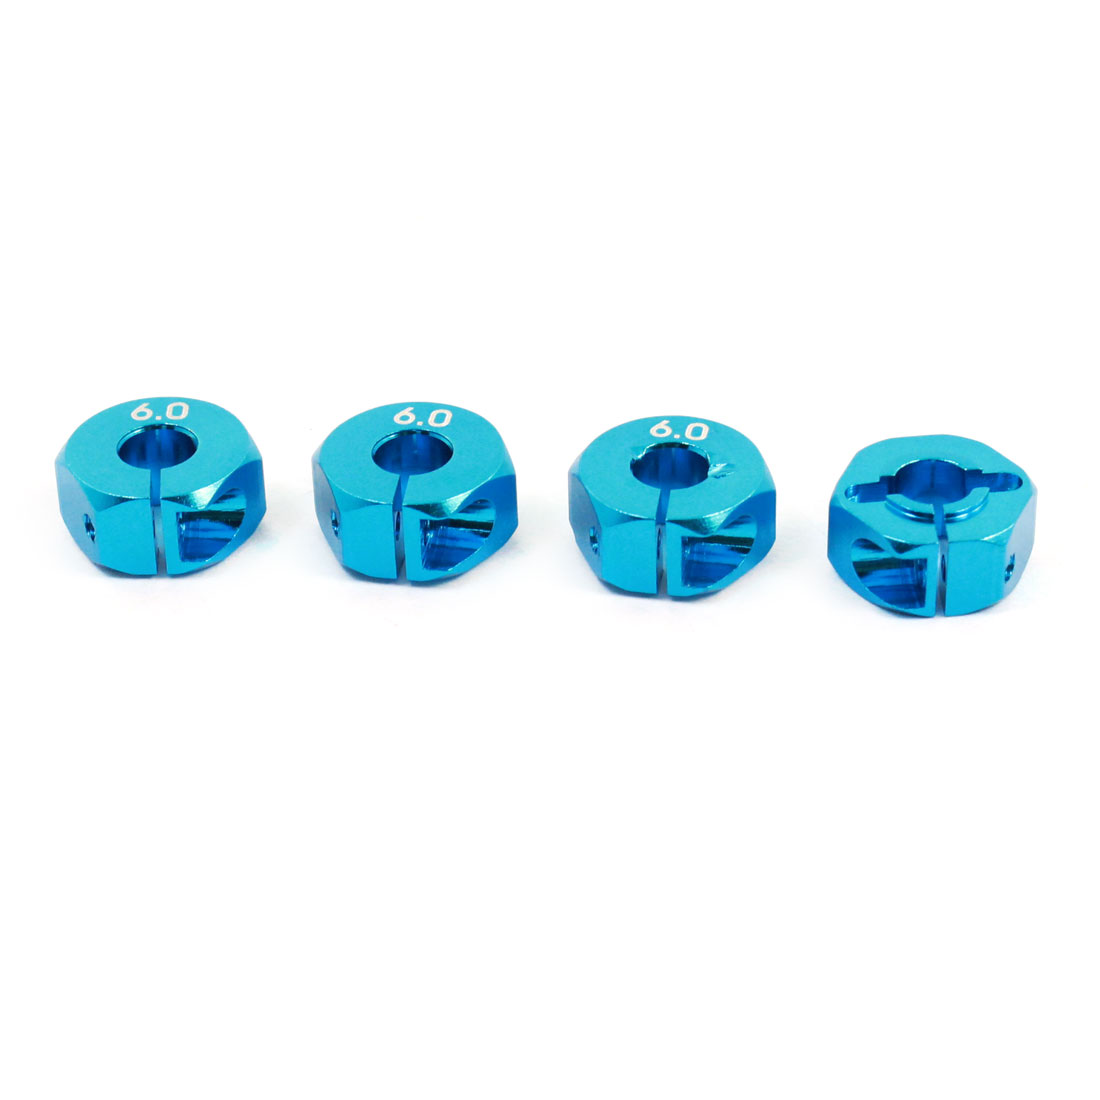 4 Pcs Blue 6mm Thickness 12mm Wheel Hex Hub Drive for RC 1/10 Scale Car Upgrade Part